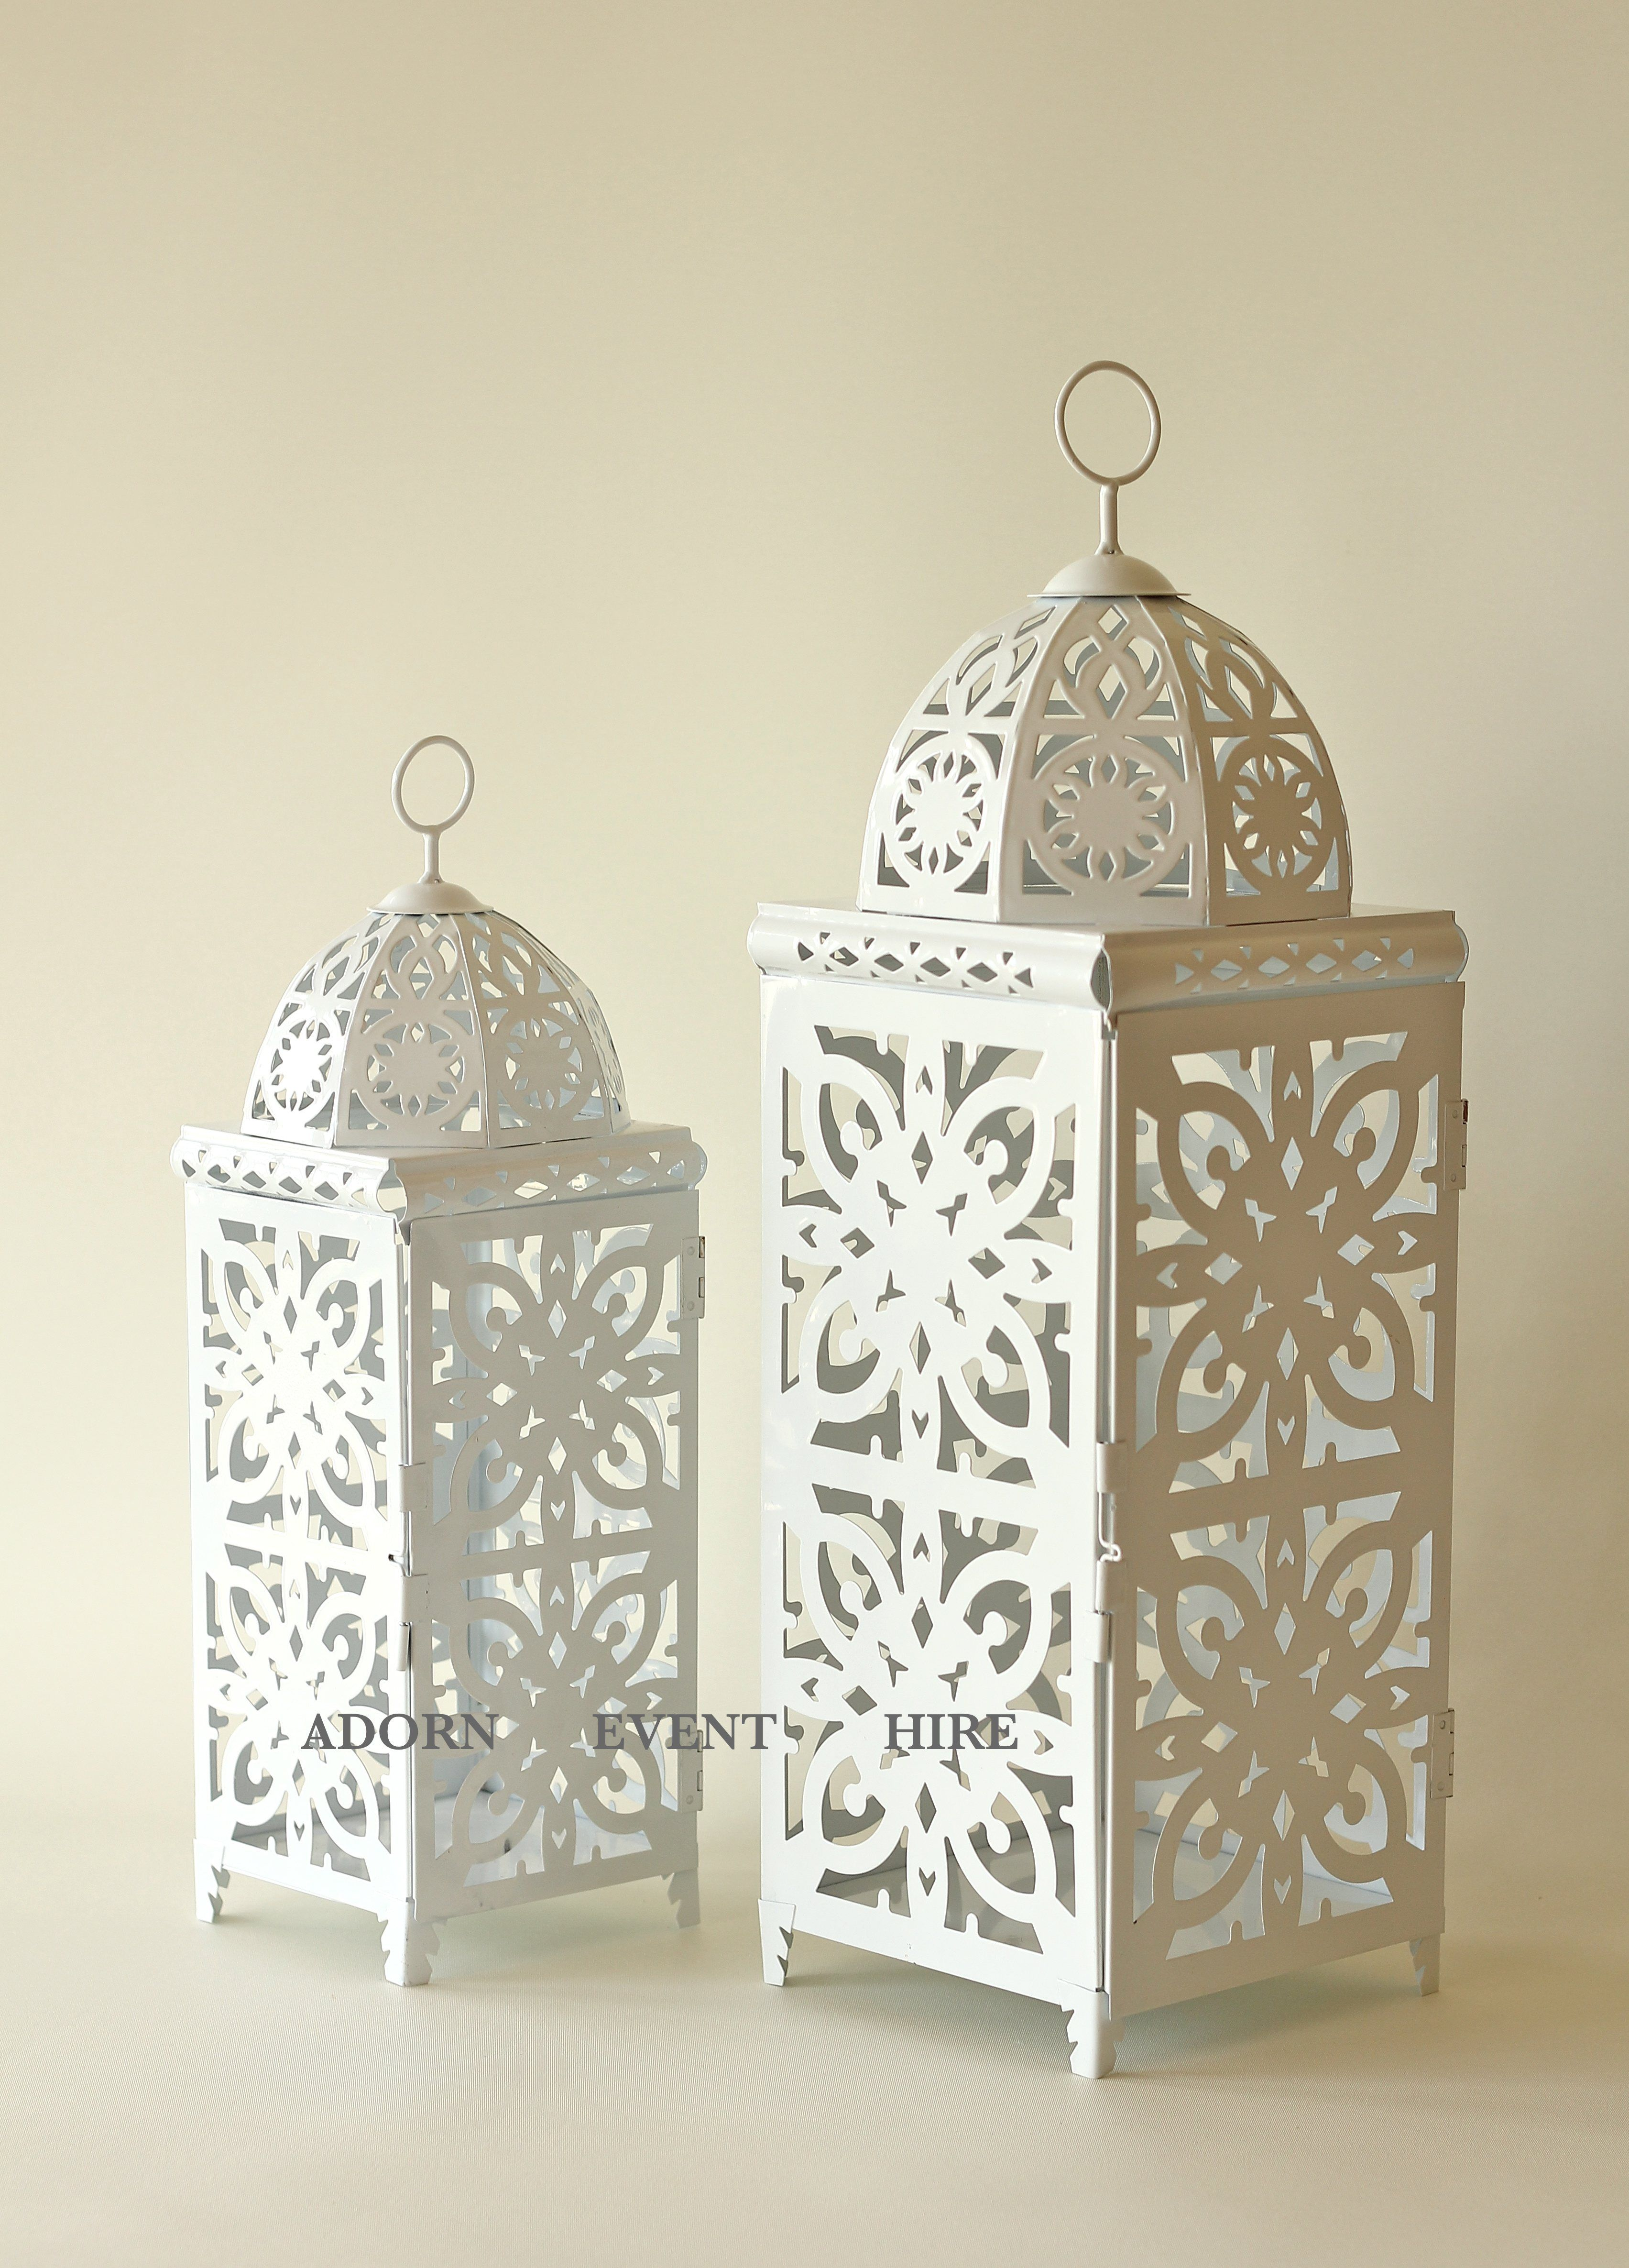 Party decoration ideas moroccan metal lantern - Wonderful Moroccan Lanterns For Home Or Wedding Decoration Ideas White Metal Moroccan Lanterns For Home